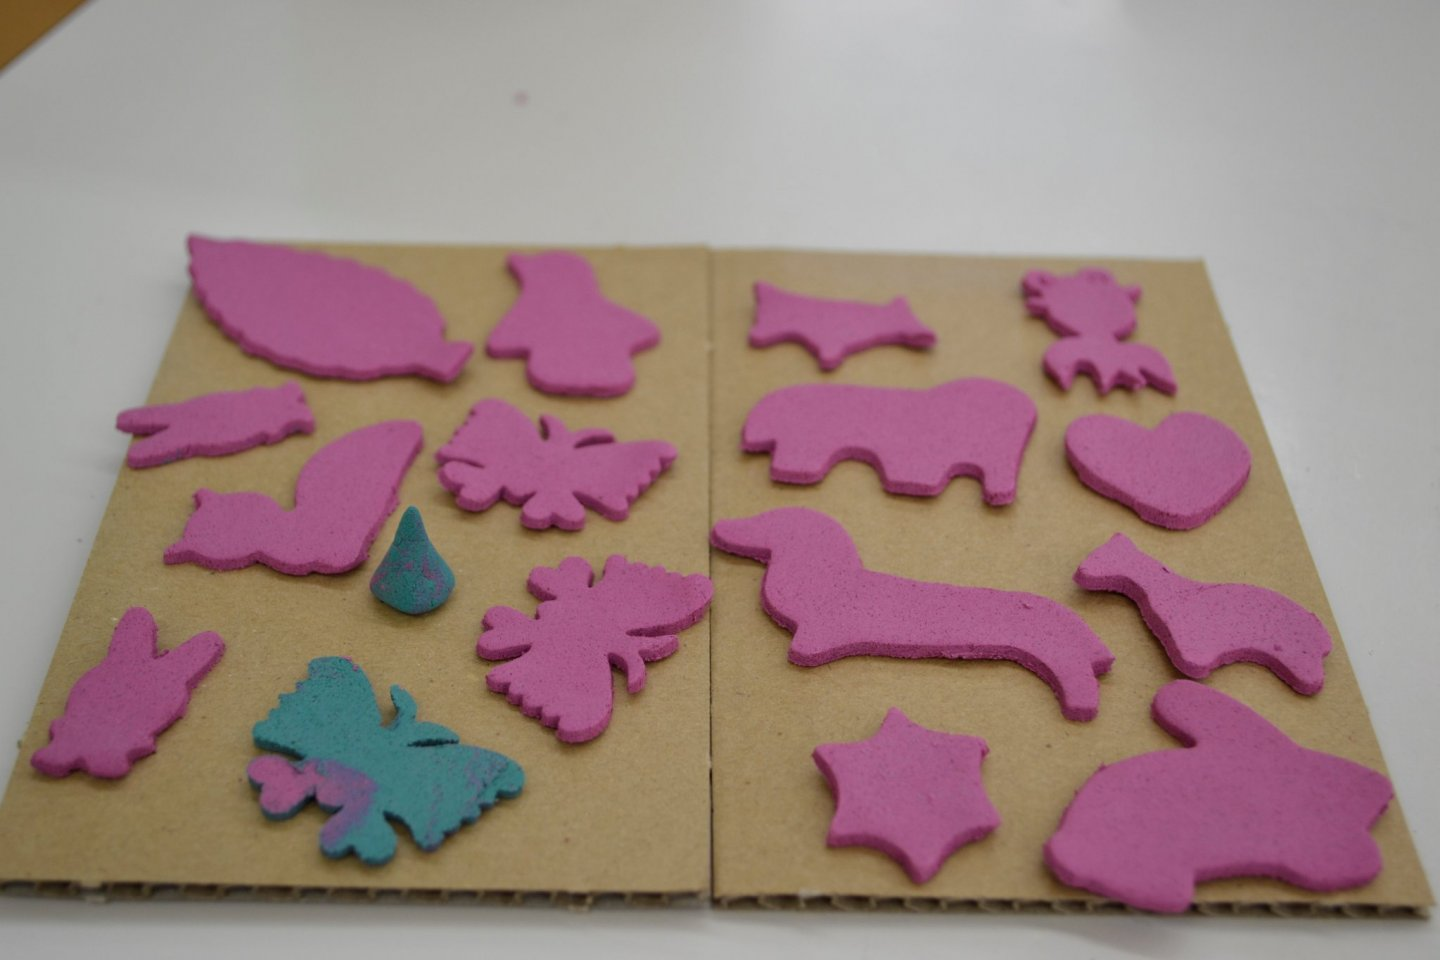 Our final products made from the cookie cutter